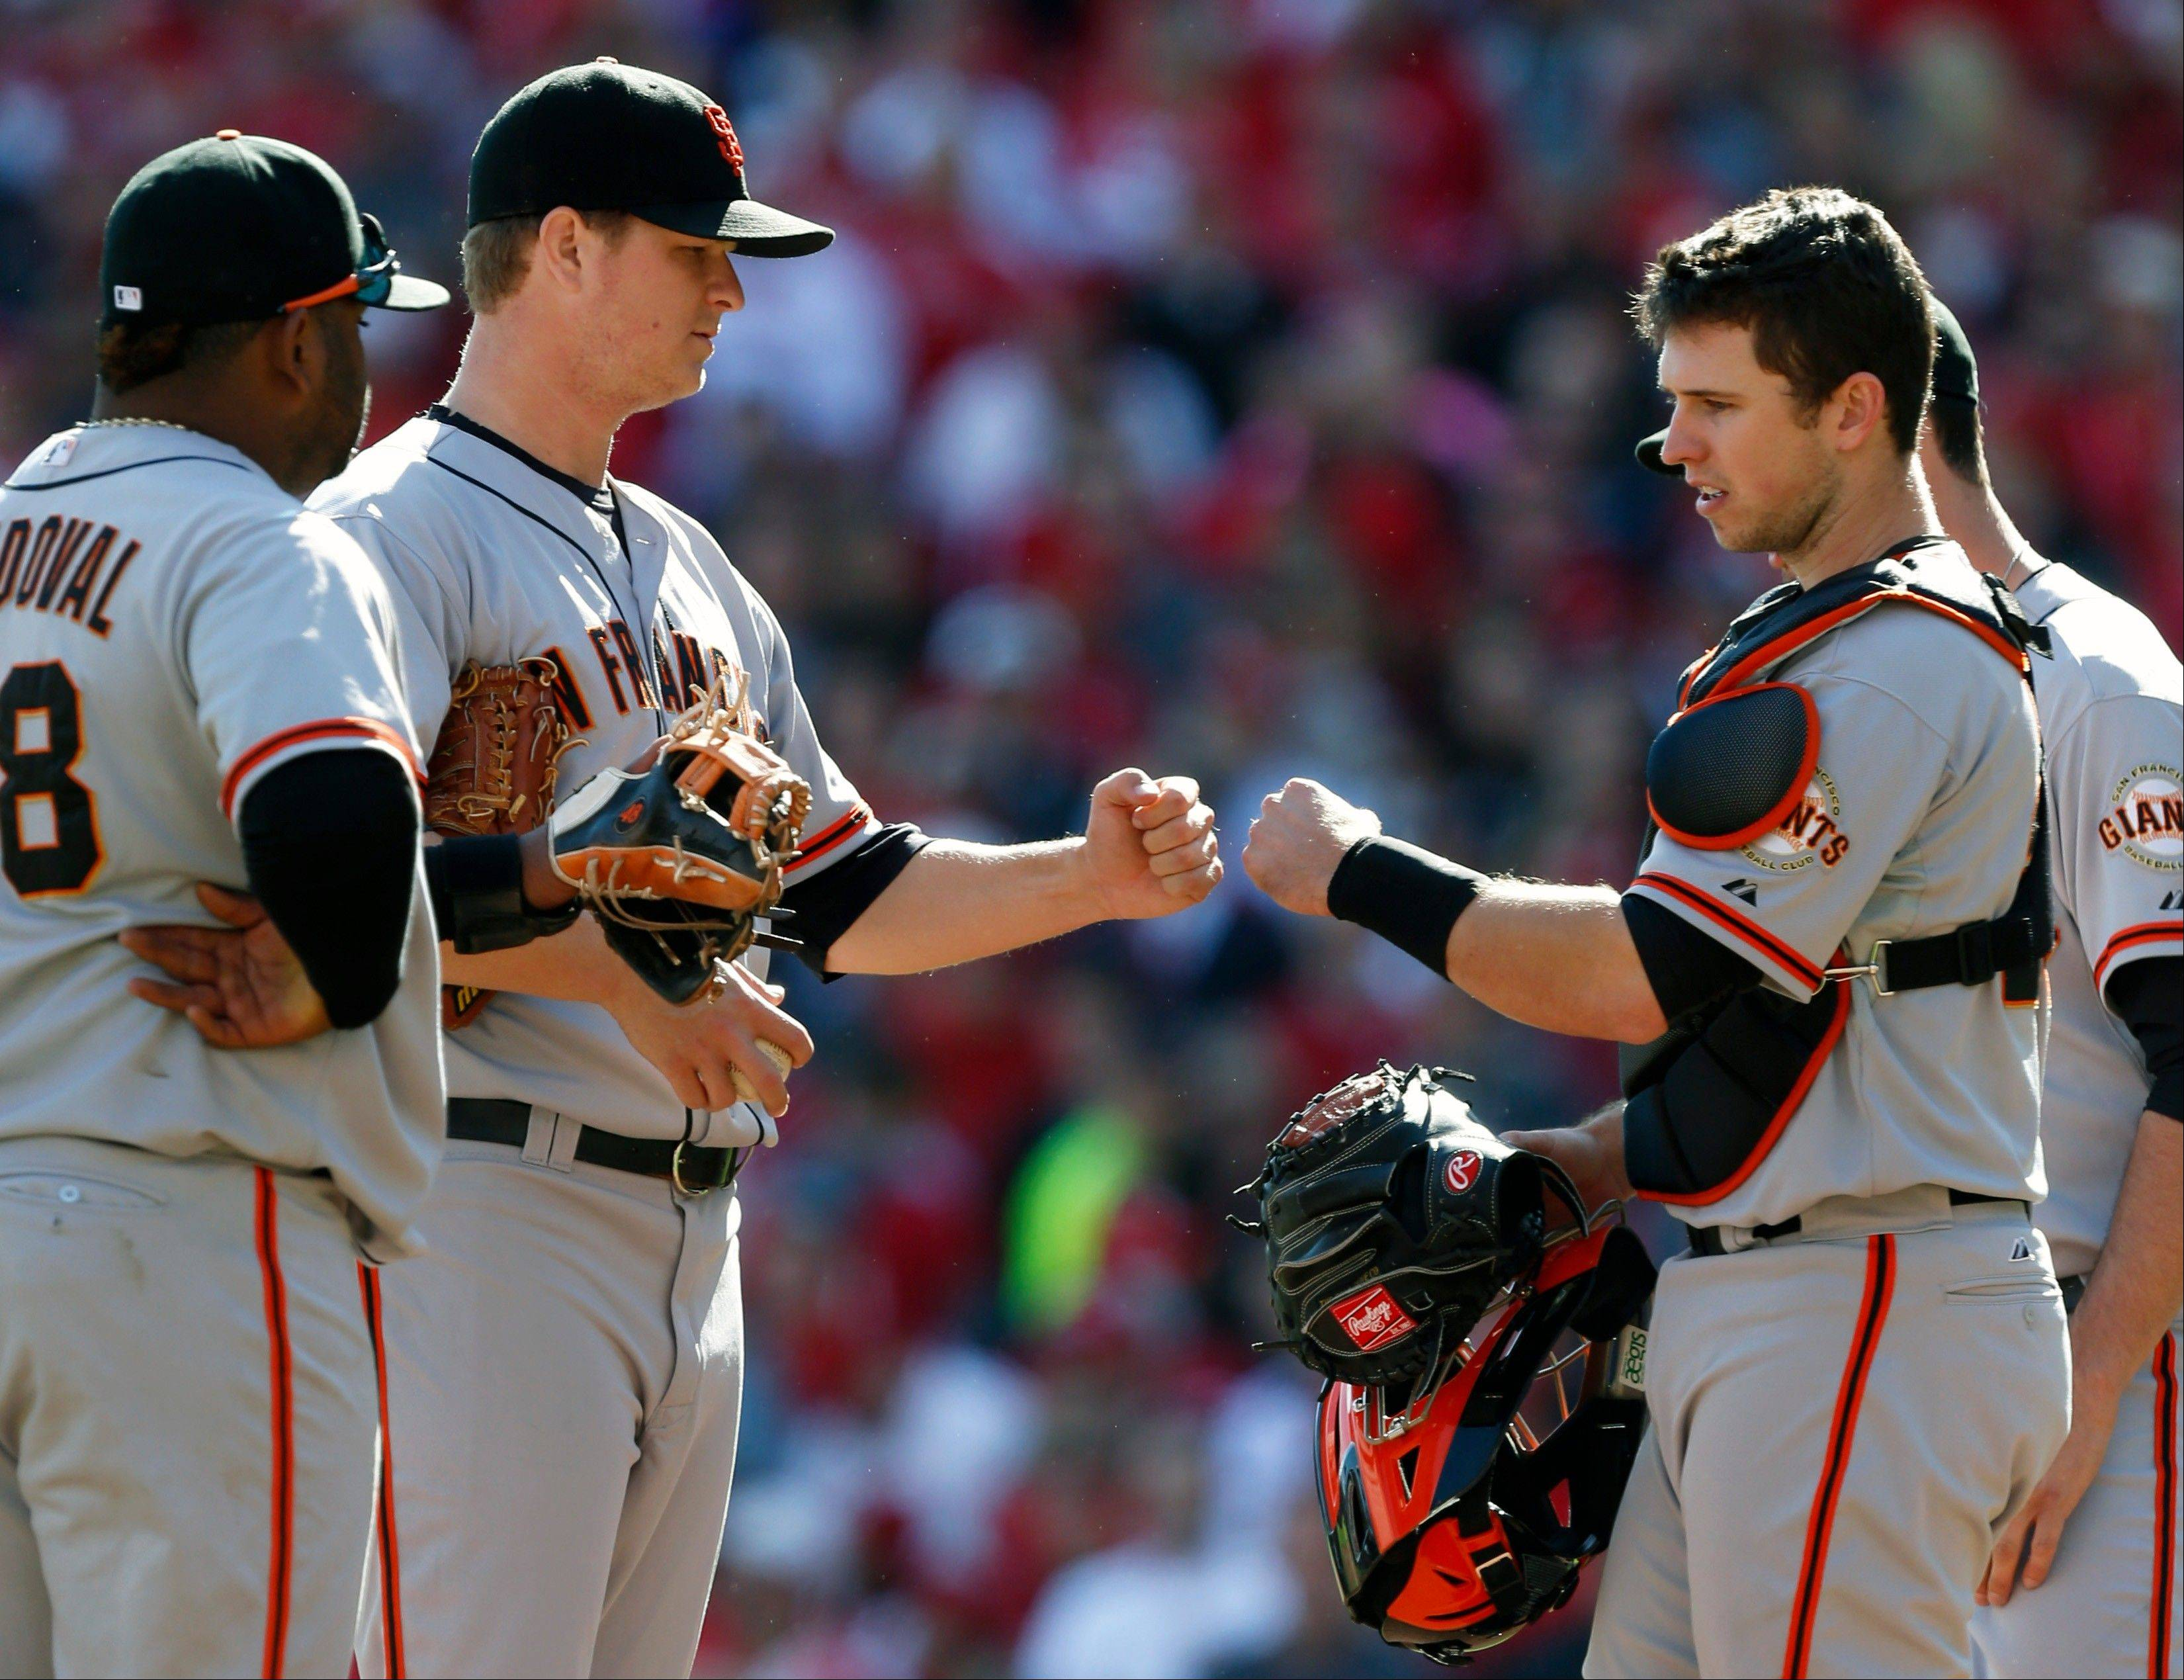 San Francisco Giants starting pitcher Matt Cain, center left, fist bumps catcher Buster Posey, right, as Cain was taken out Thursday during the sixth inning of Game 5 of the National League division baseball series.